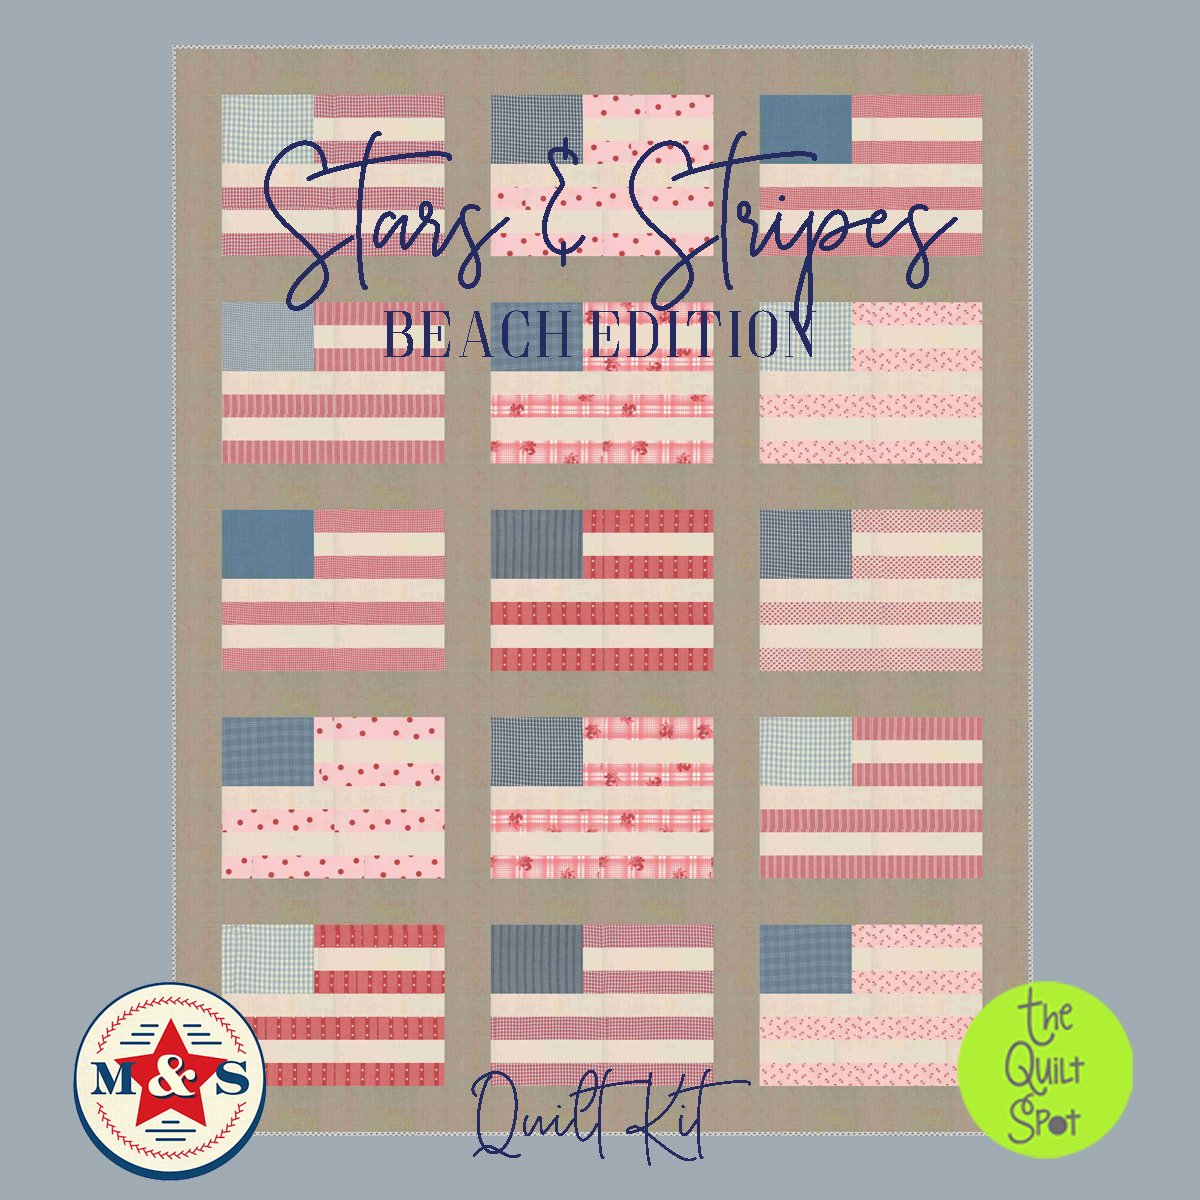 Stars and Stripes Beach Edition Quilt Kit featuring Minick & Simpson